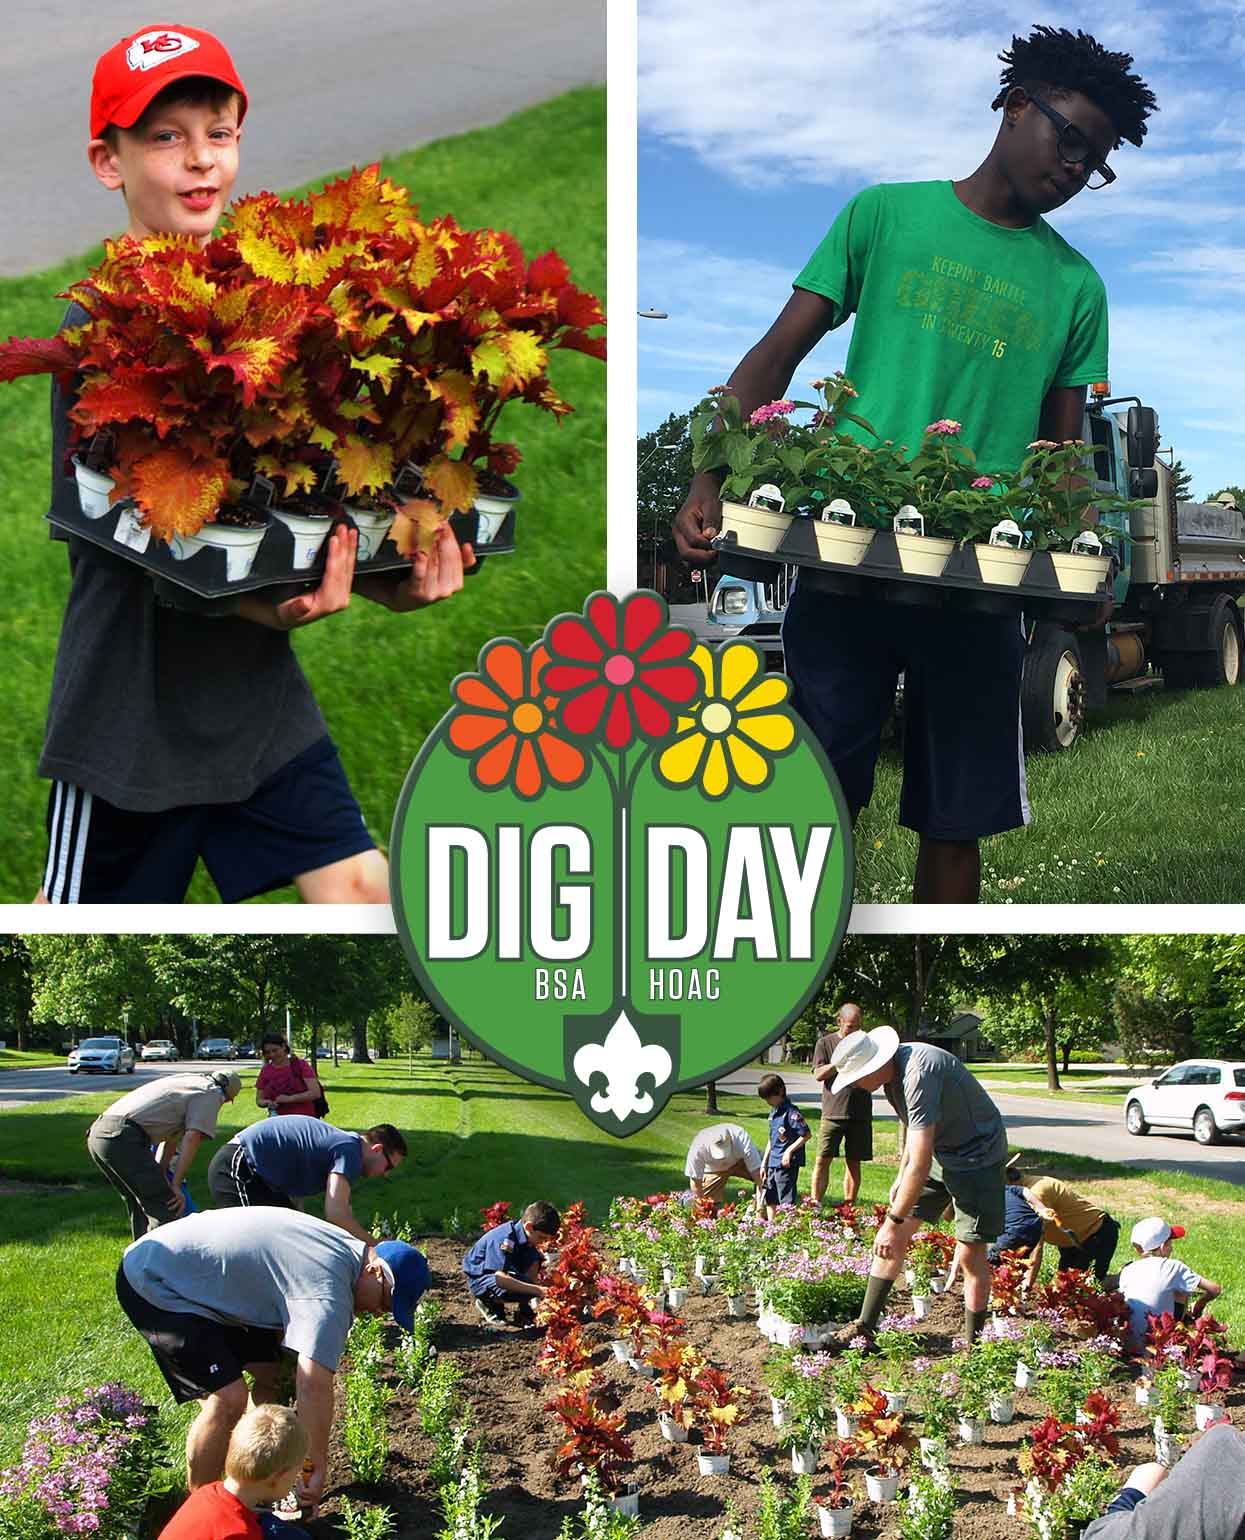 Dig Day is Back